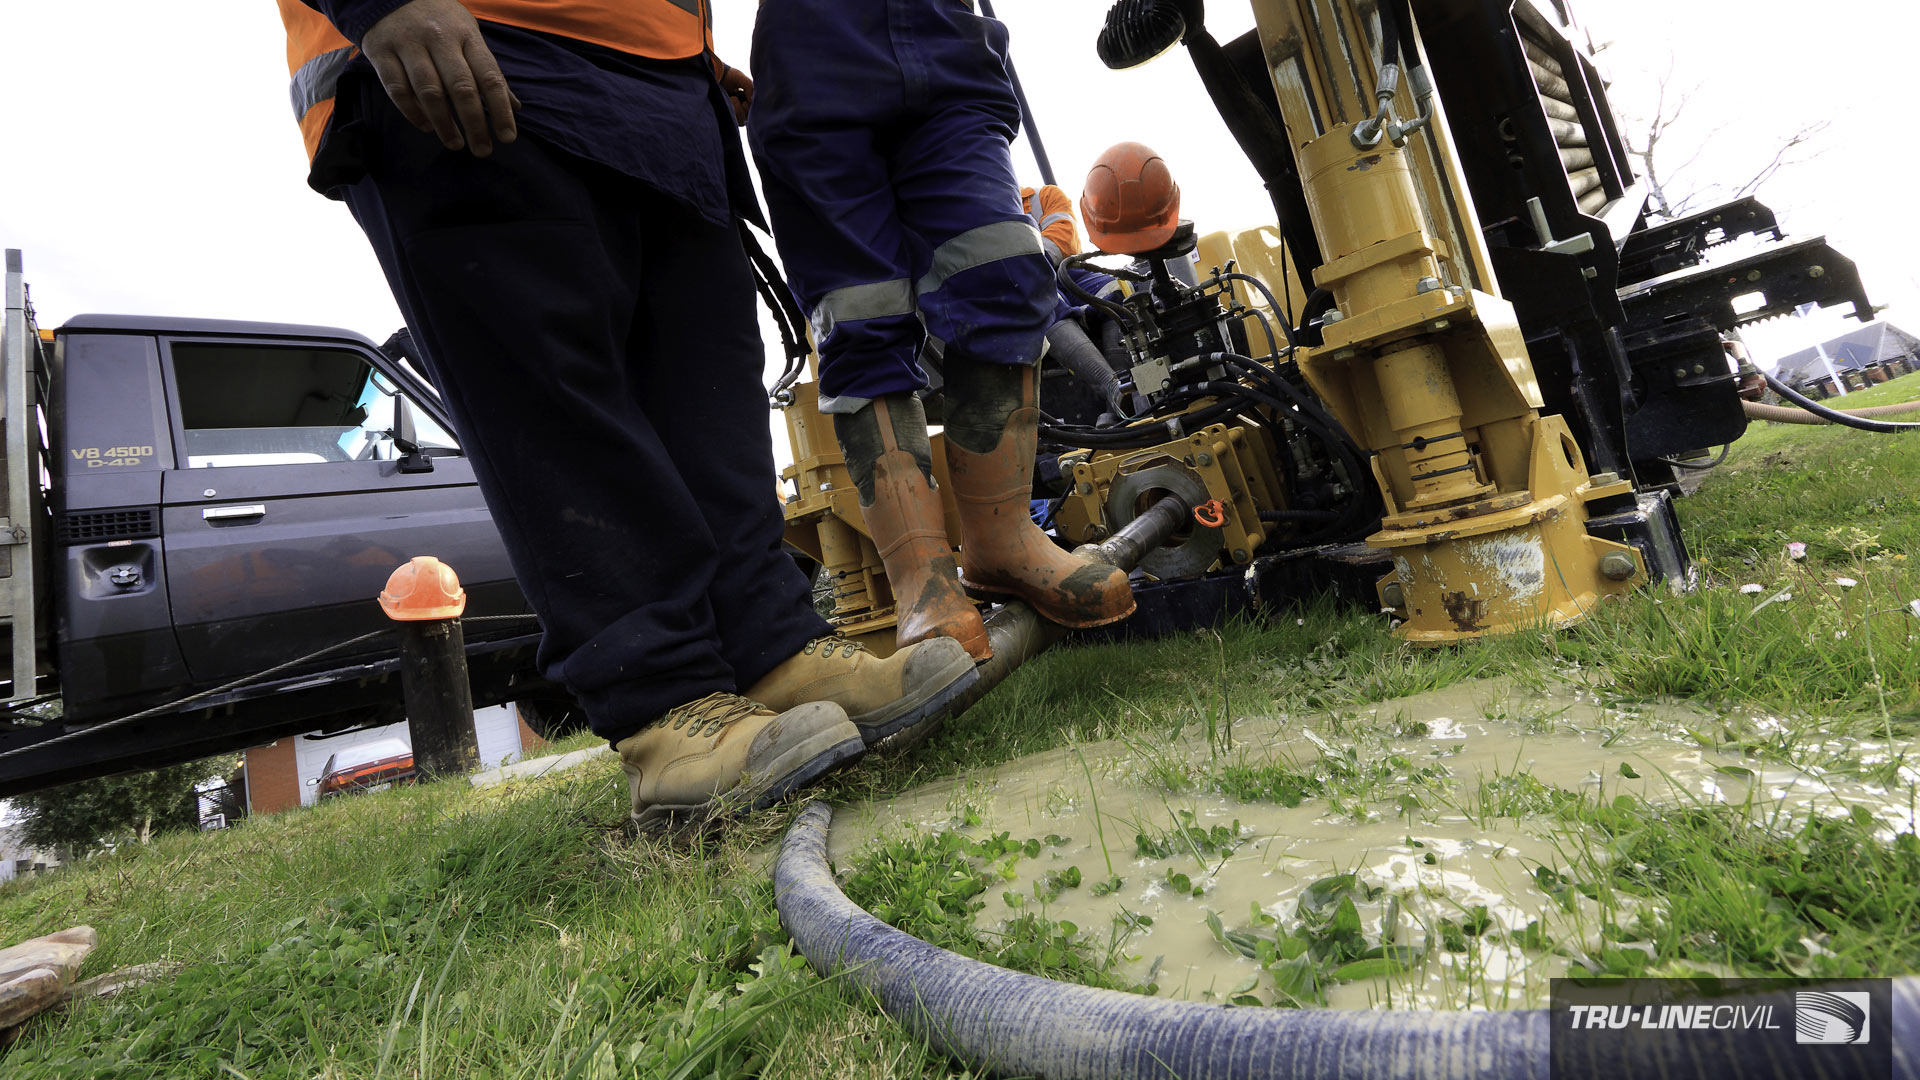 The weight of two men on the entry drill rod helps the pilot bit achieve bite into the sandy ground. Horizontal Directional Drilling, Tru-Line Civil, documentary photography, Parklands West, Christchurch, New Zealand, Gravity Wastewater Replacement, HDD